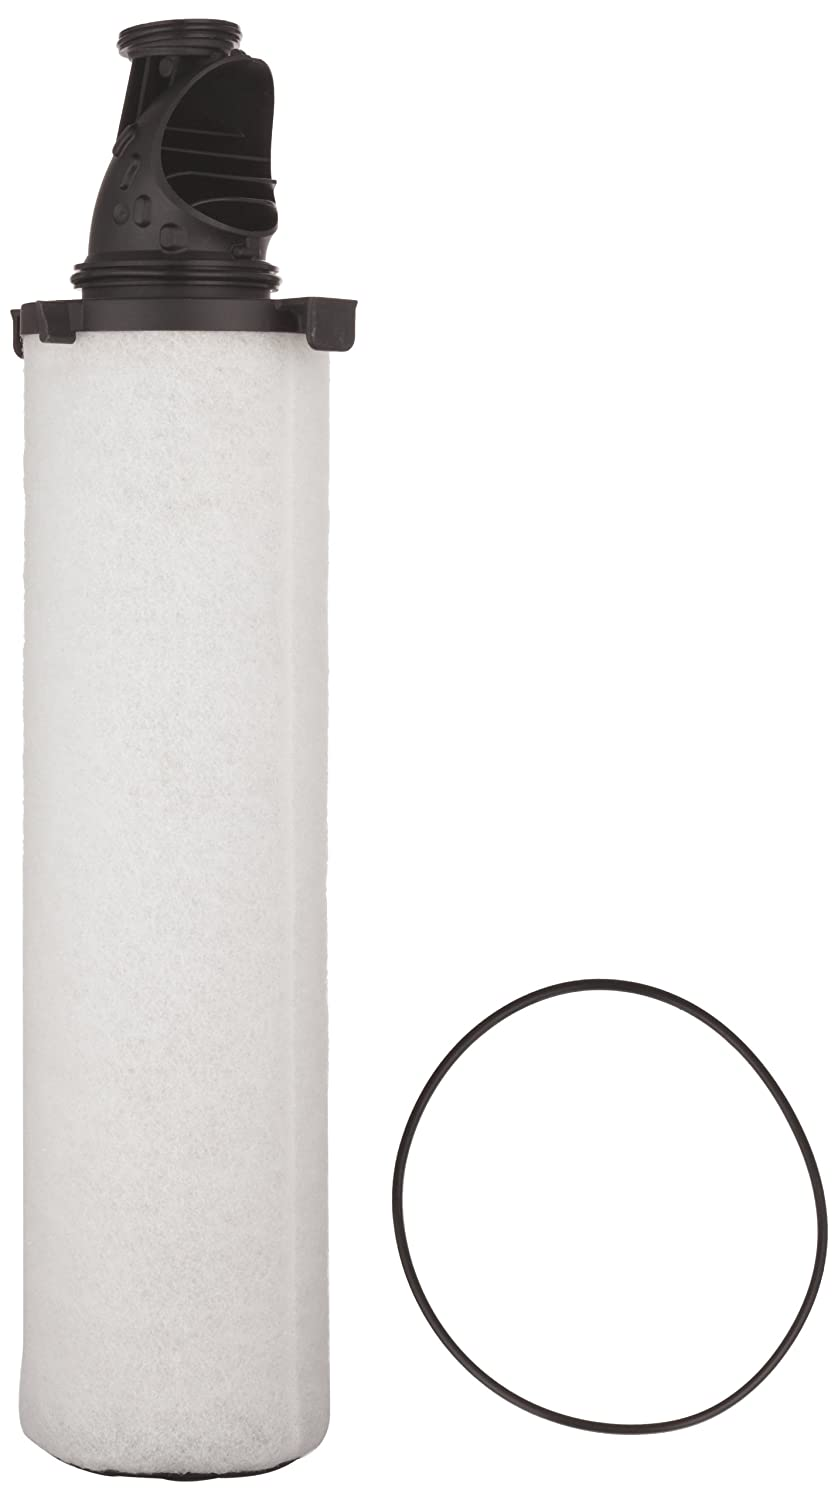 Parker 045AA Oil-X Evolution Compressed Air Filter Element, Removes Oil, Water and Particulate, 0.01 Micron by Parker  B004O0U6BA